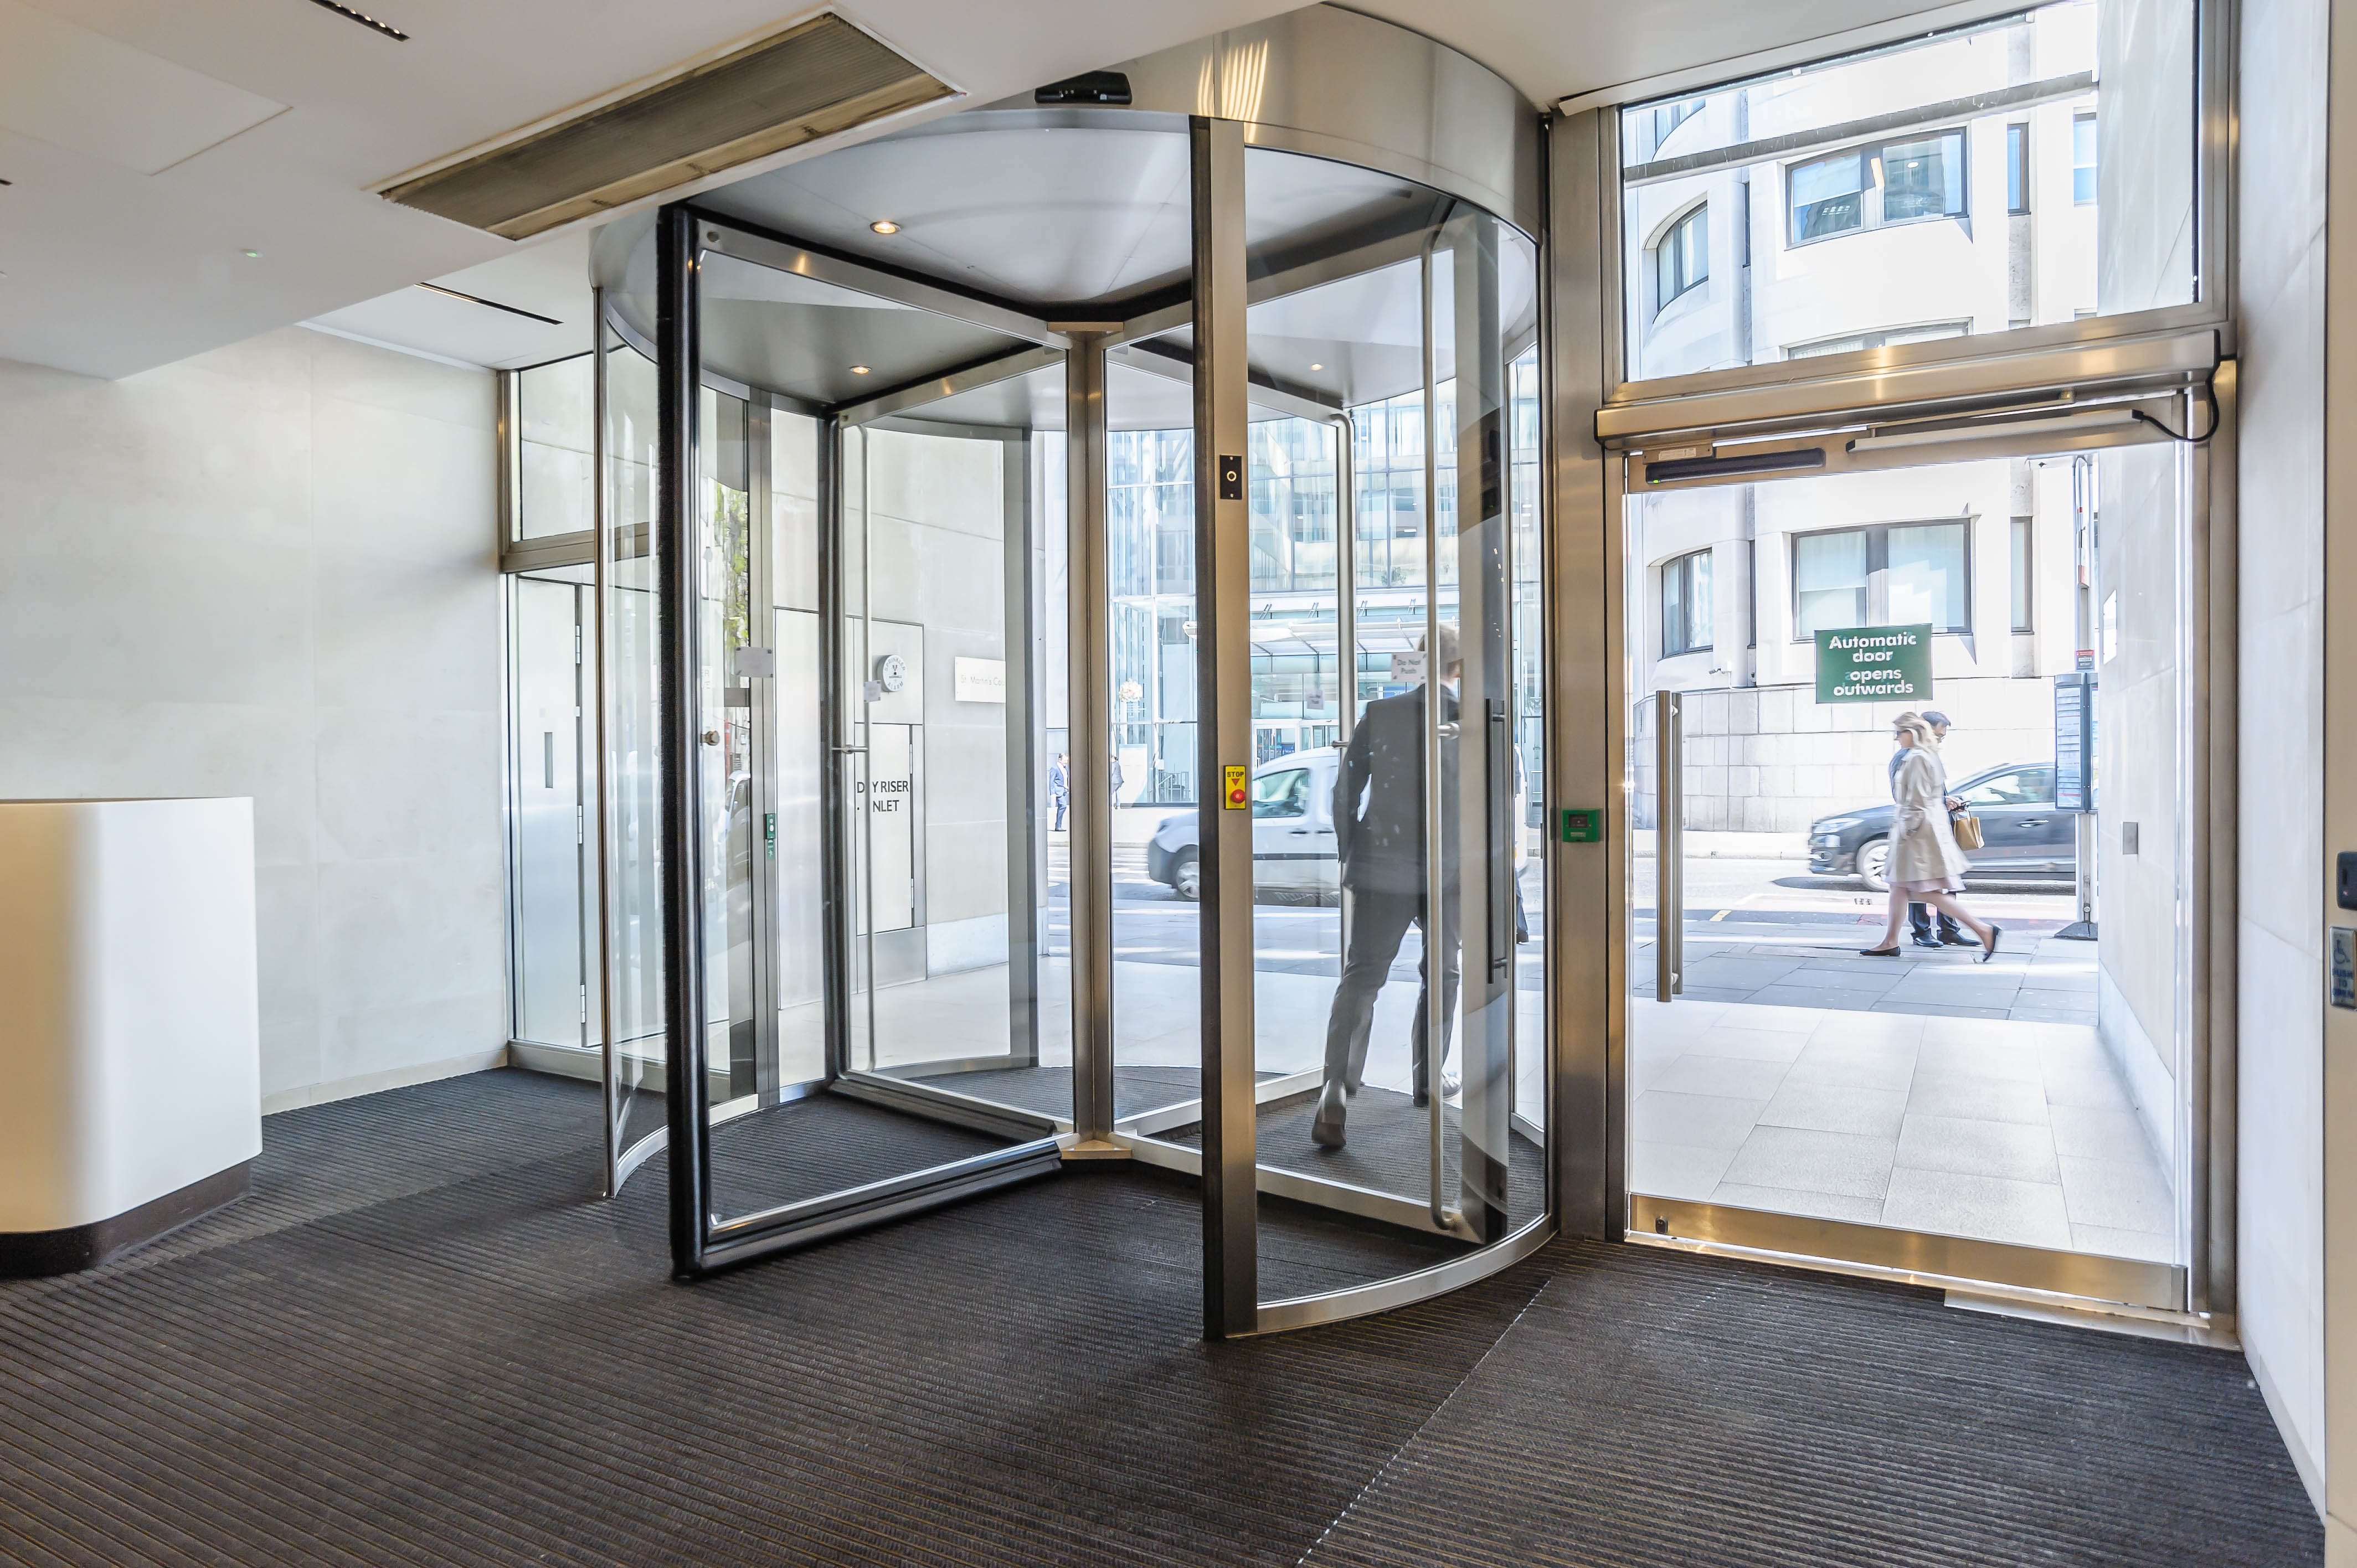 record uk's automatic door solutions for CBRE